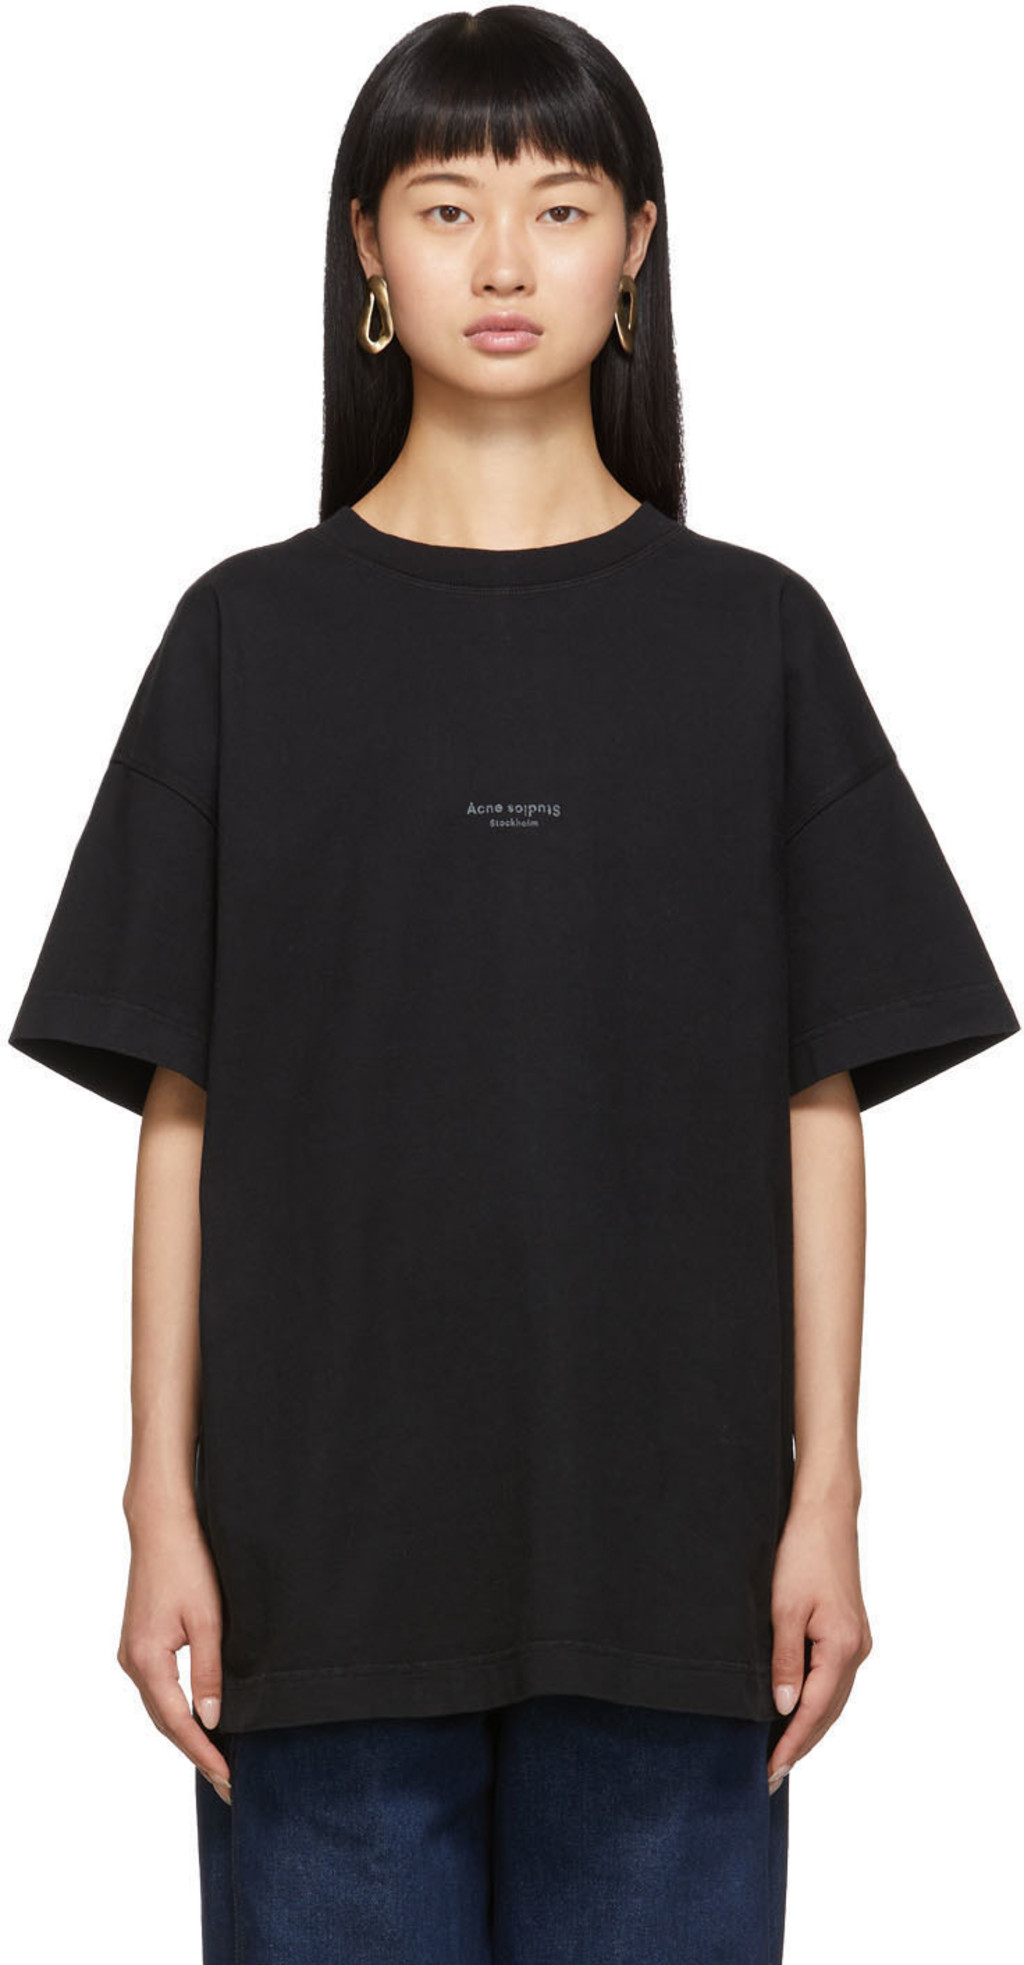 57be20eff22b0 Acne Studios for Women FW19 Collection | SSENSE UK